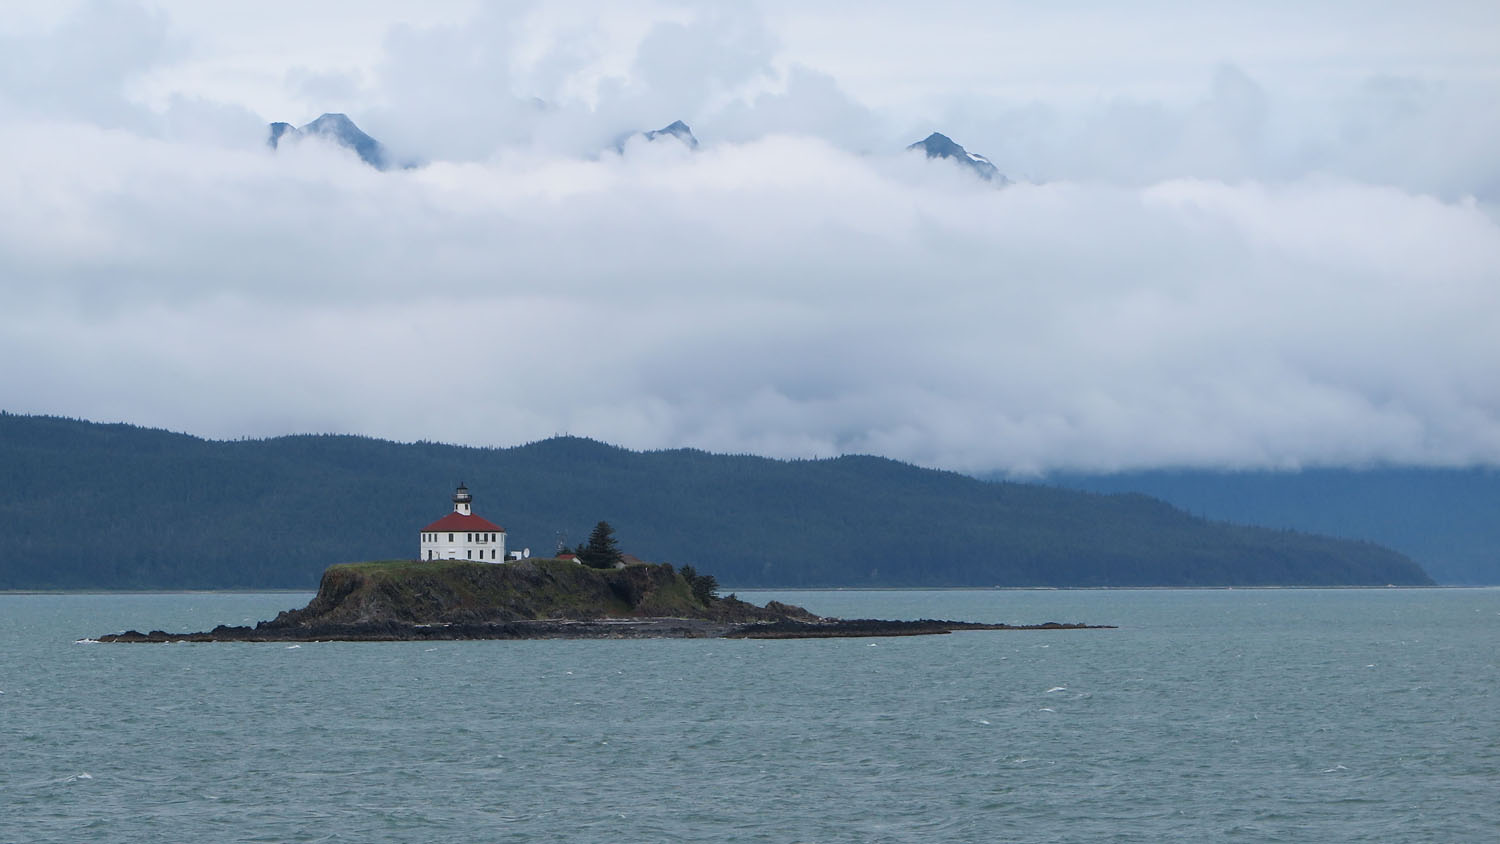 Alaska-State-Ferry-Inside-Passage-Scenery-Lighthouse